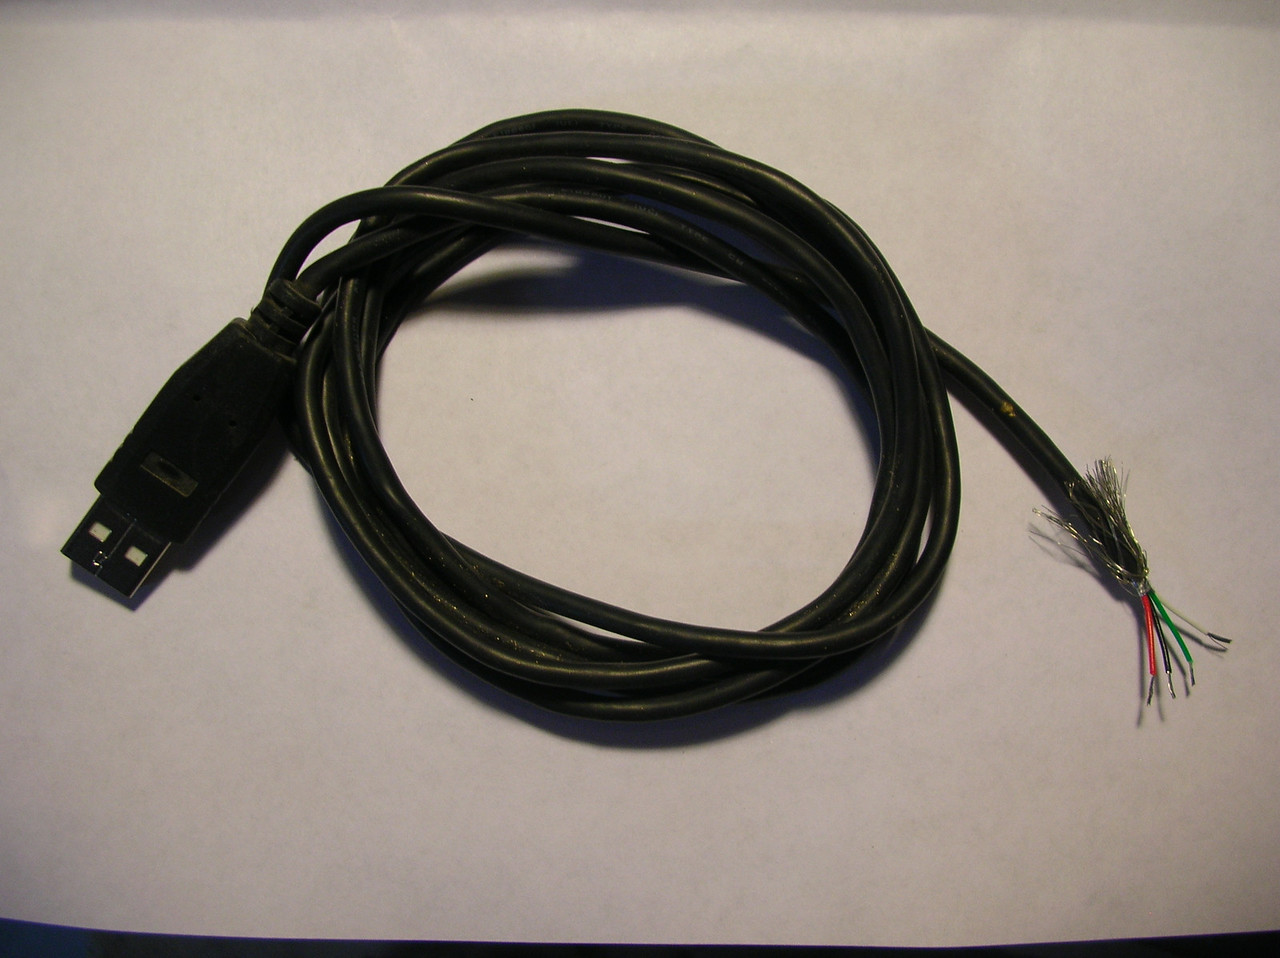 An old camera USB cable was used for connection to the card reader.  The wires were stripped as shown.